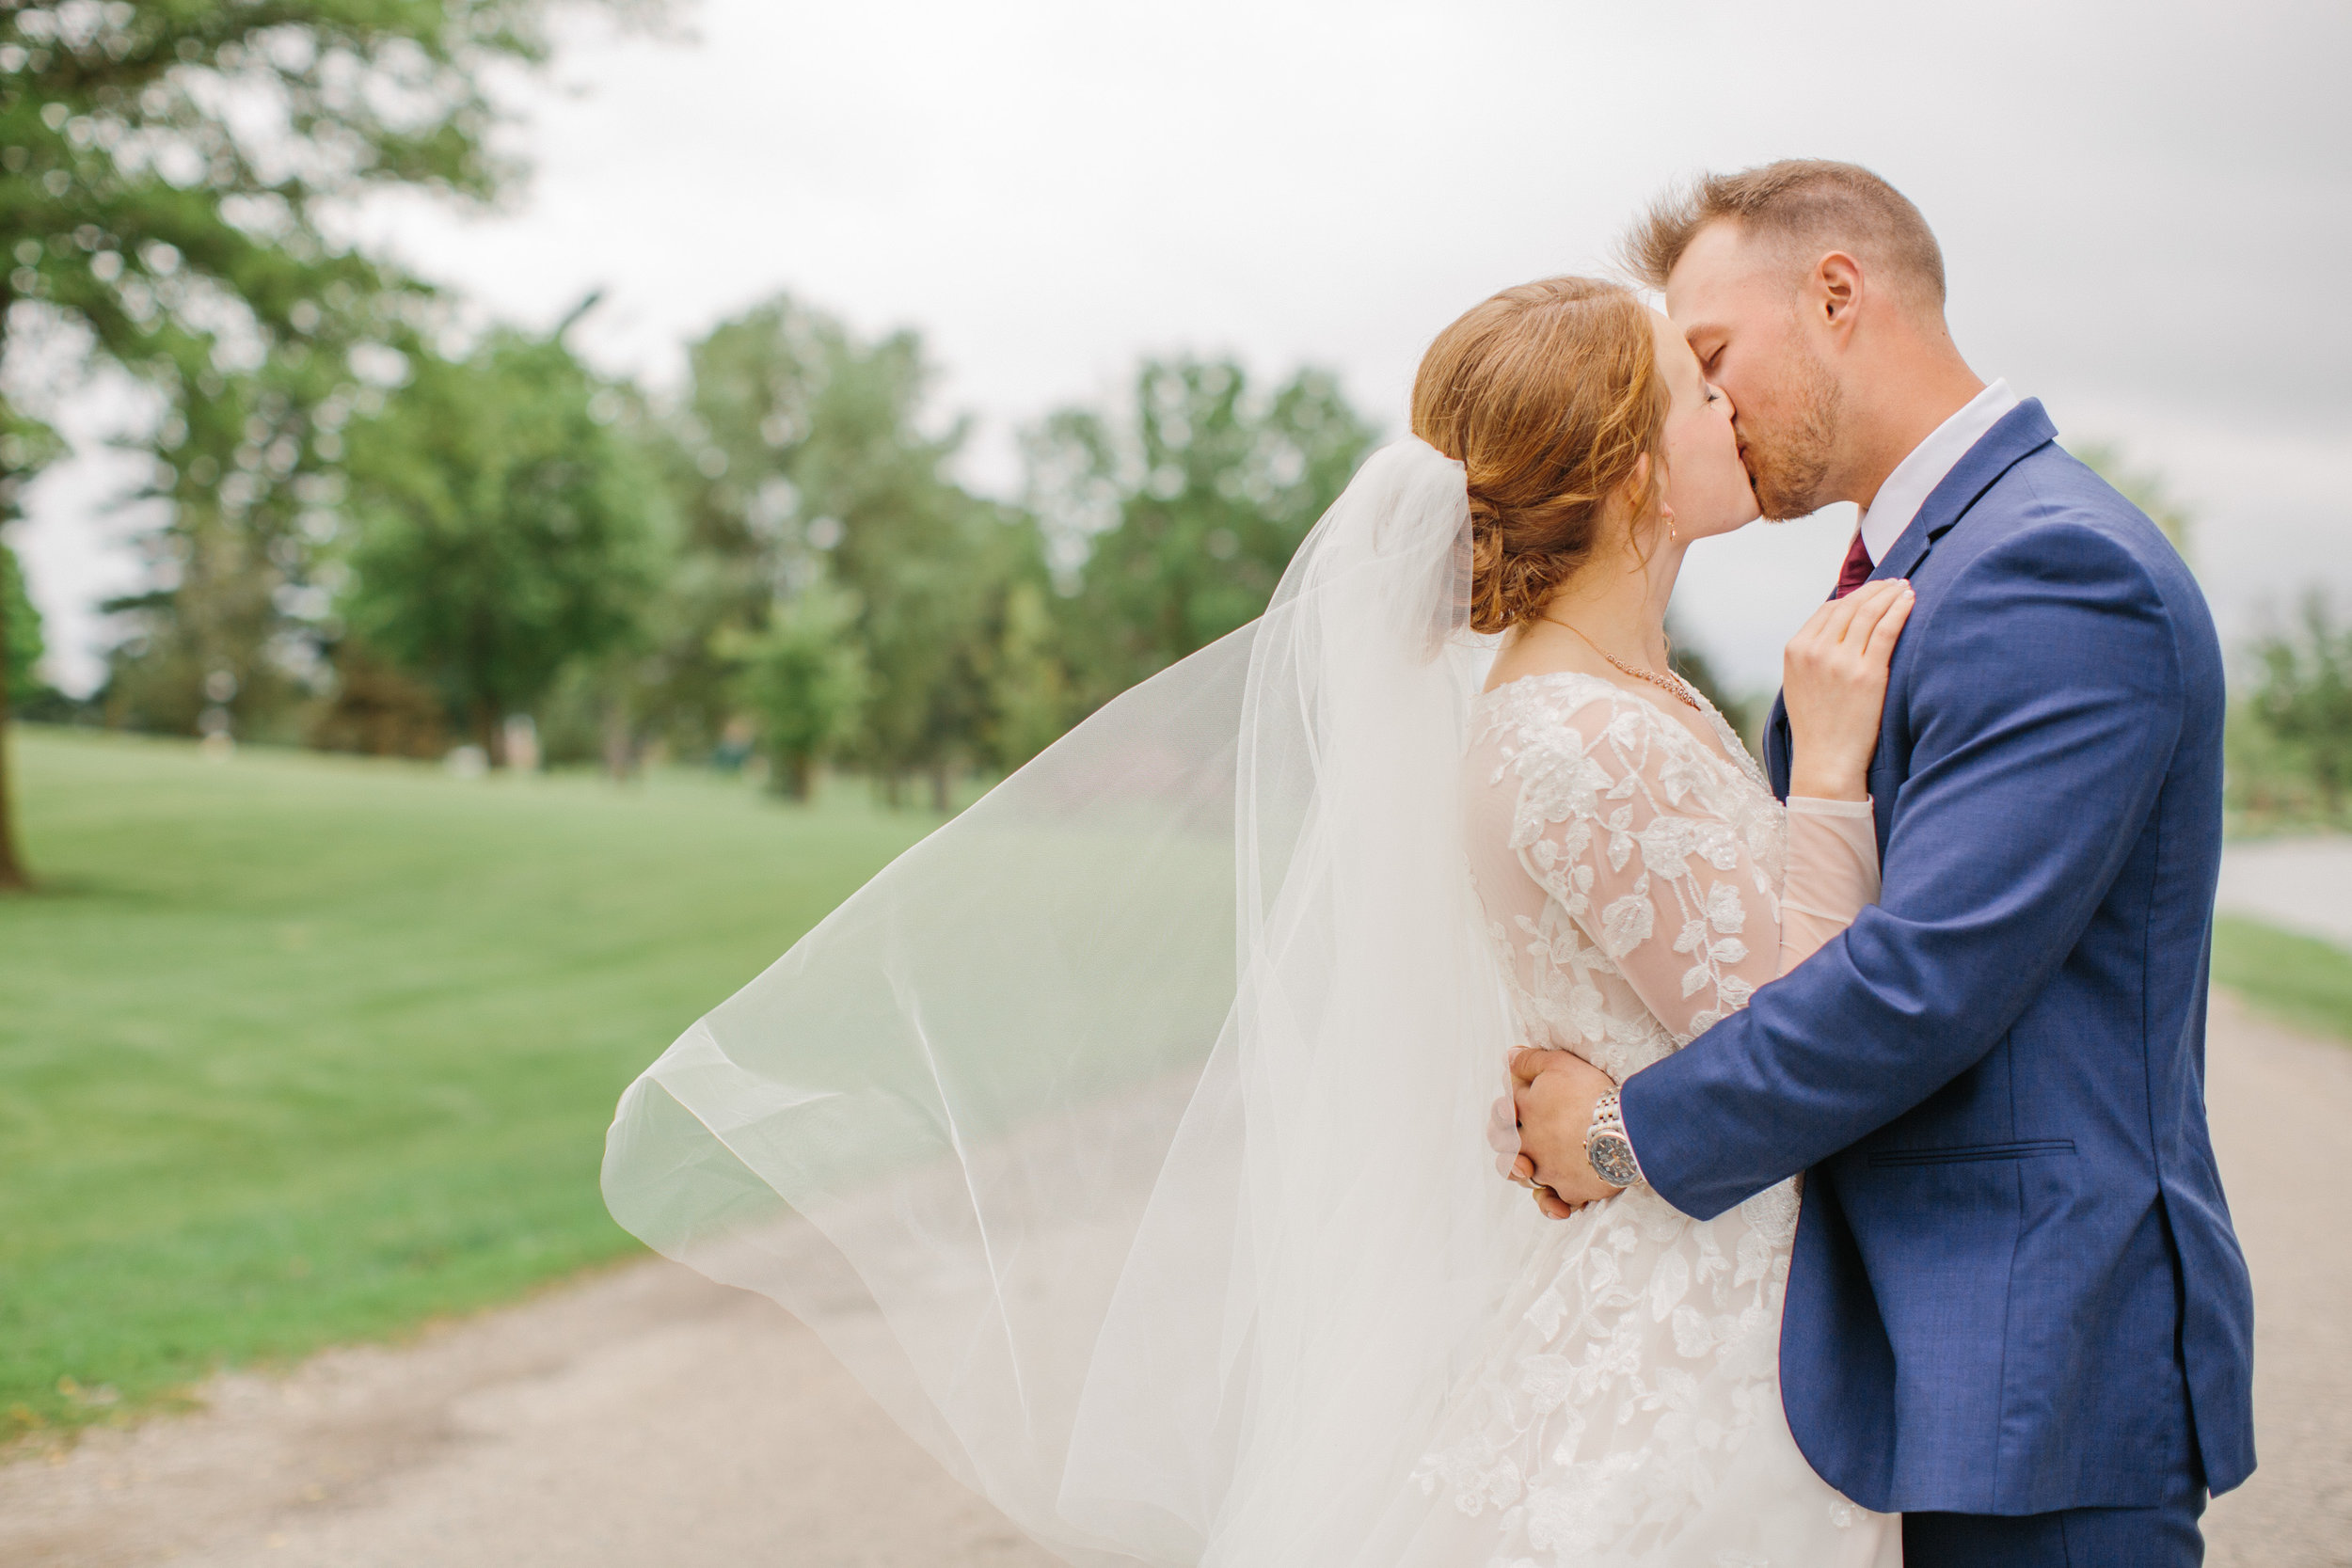 wedding photos with veil blowing in the wind